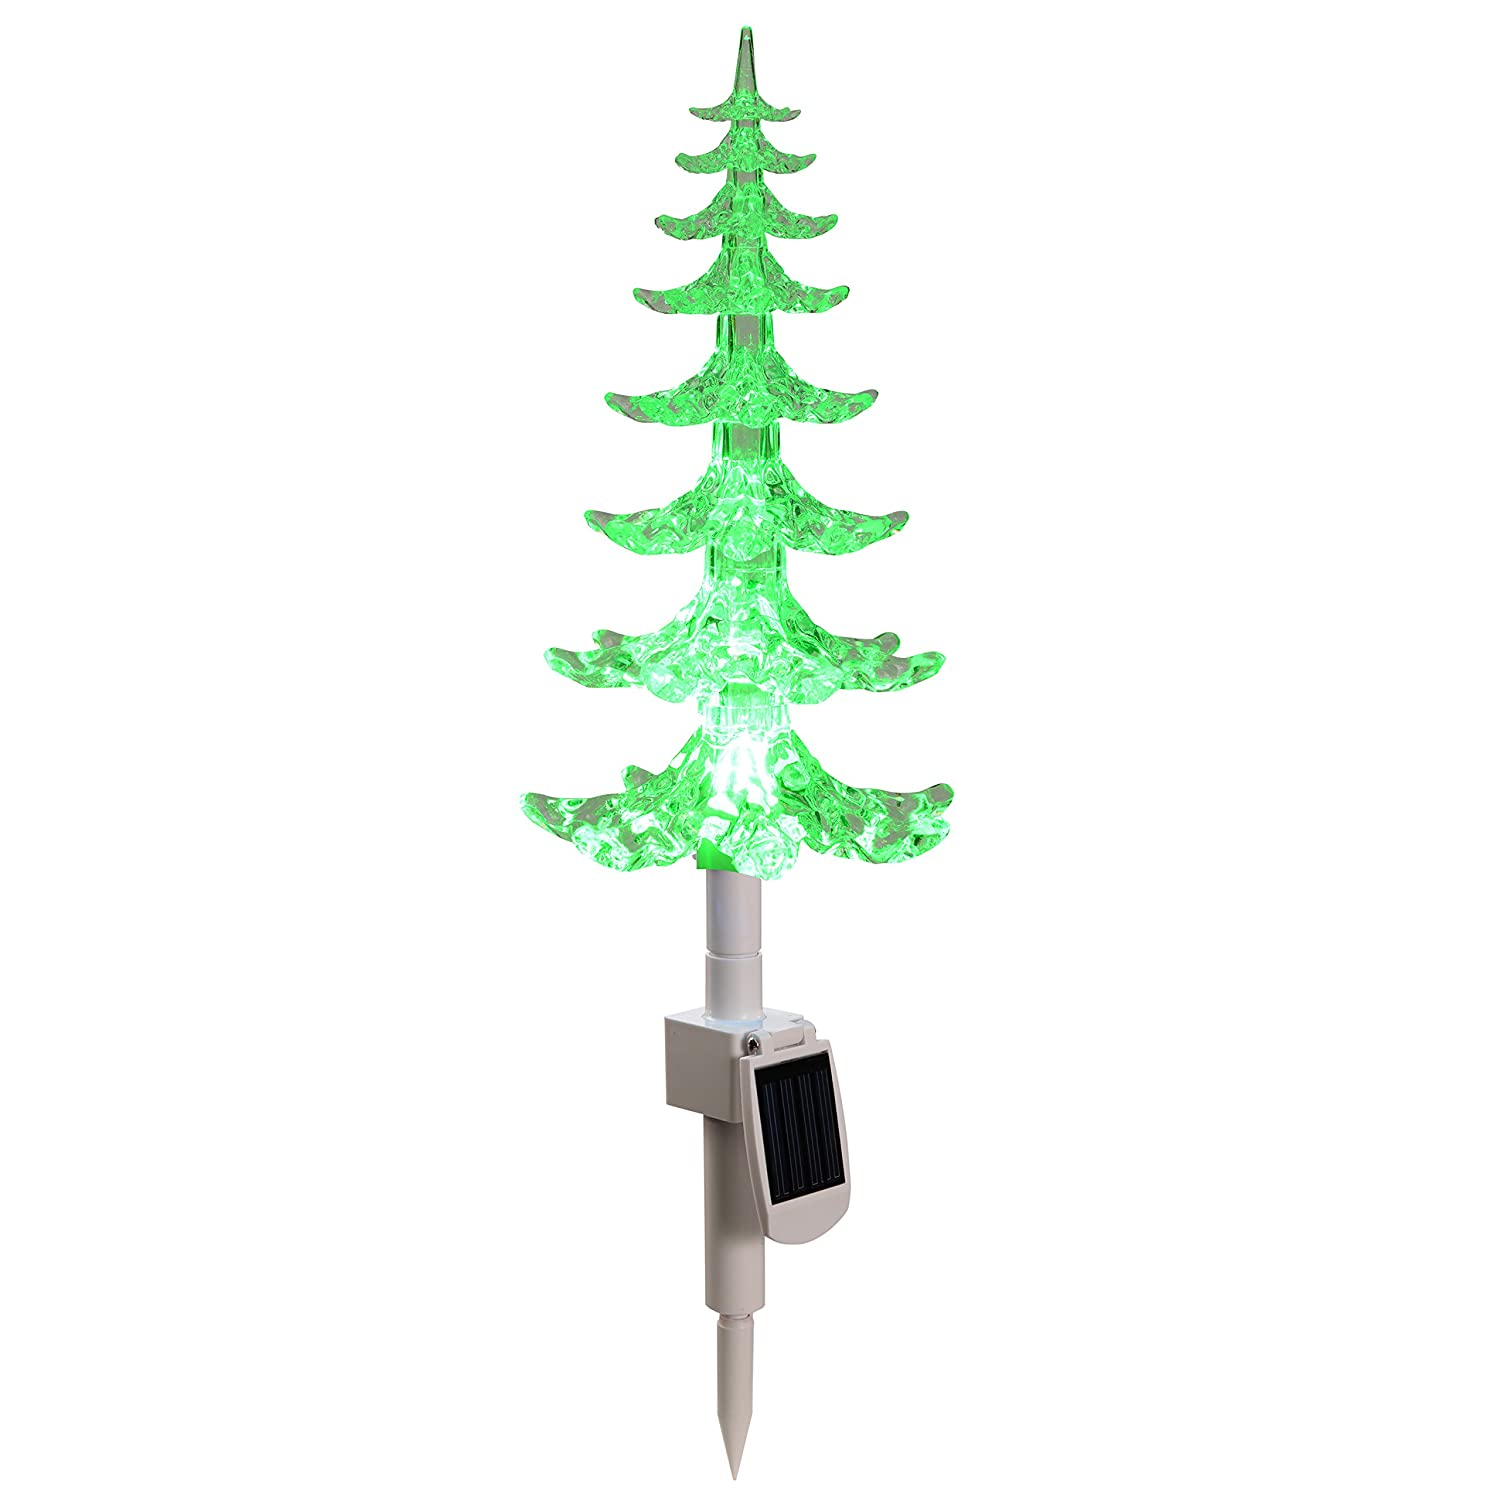 WeRChristmas 47 cm Solar Powered Christmas Tree with Colour Changing Light Decoration